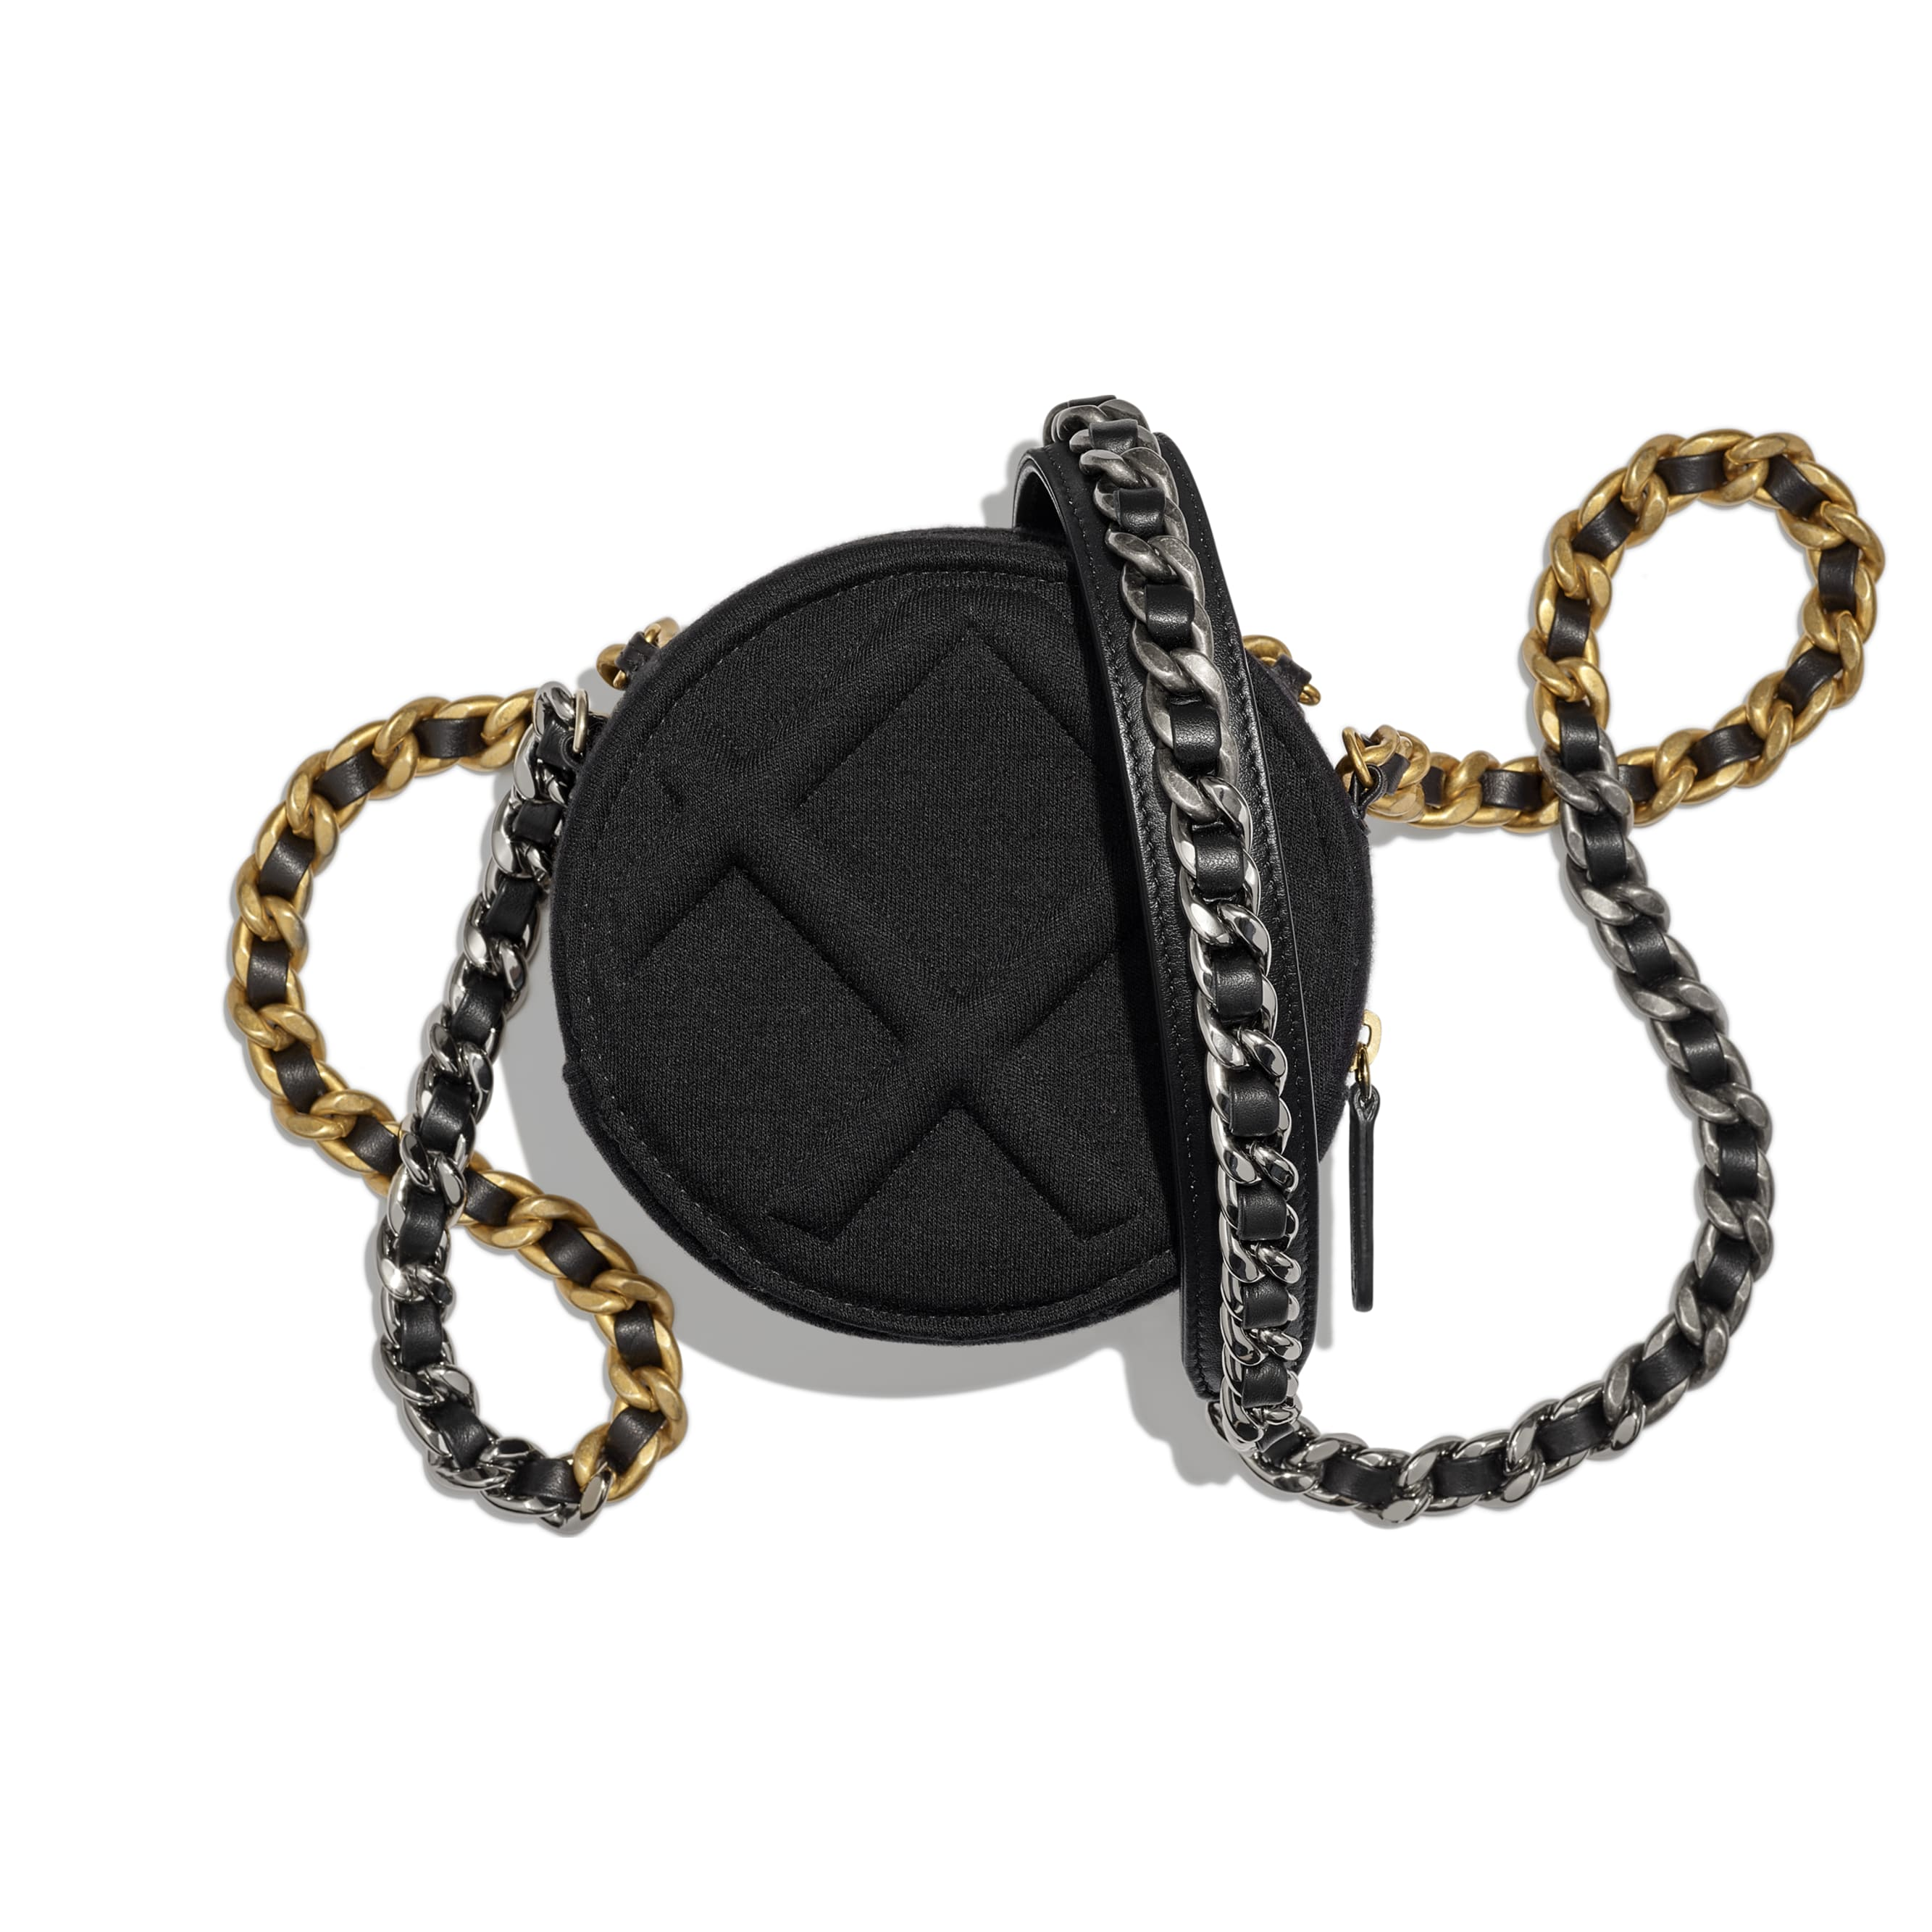 CHANEL 19 Clutch with Chain - Black - Jersey, Gold-Tone, Silver-Tone & Ruthenium-Finish Metal - CHANEL - Alternative view - see standard sized version